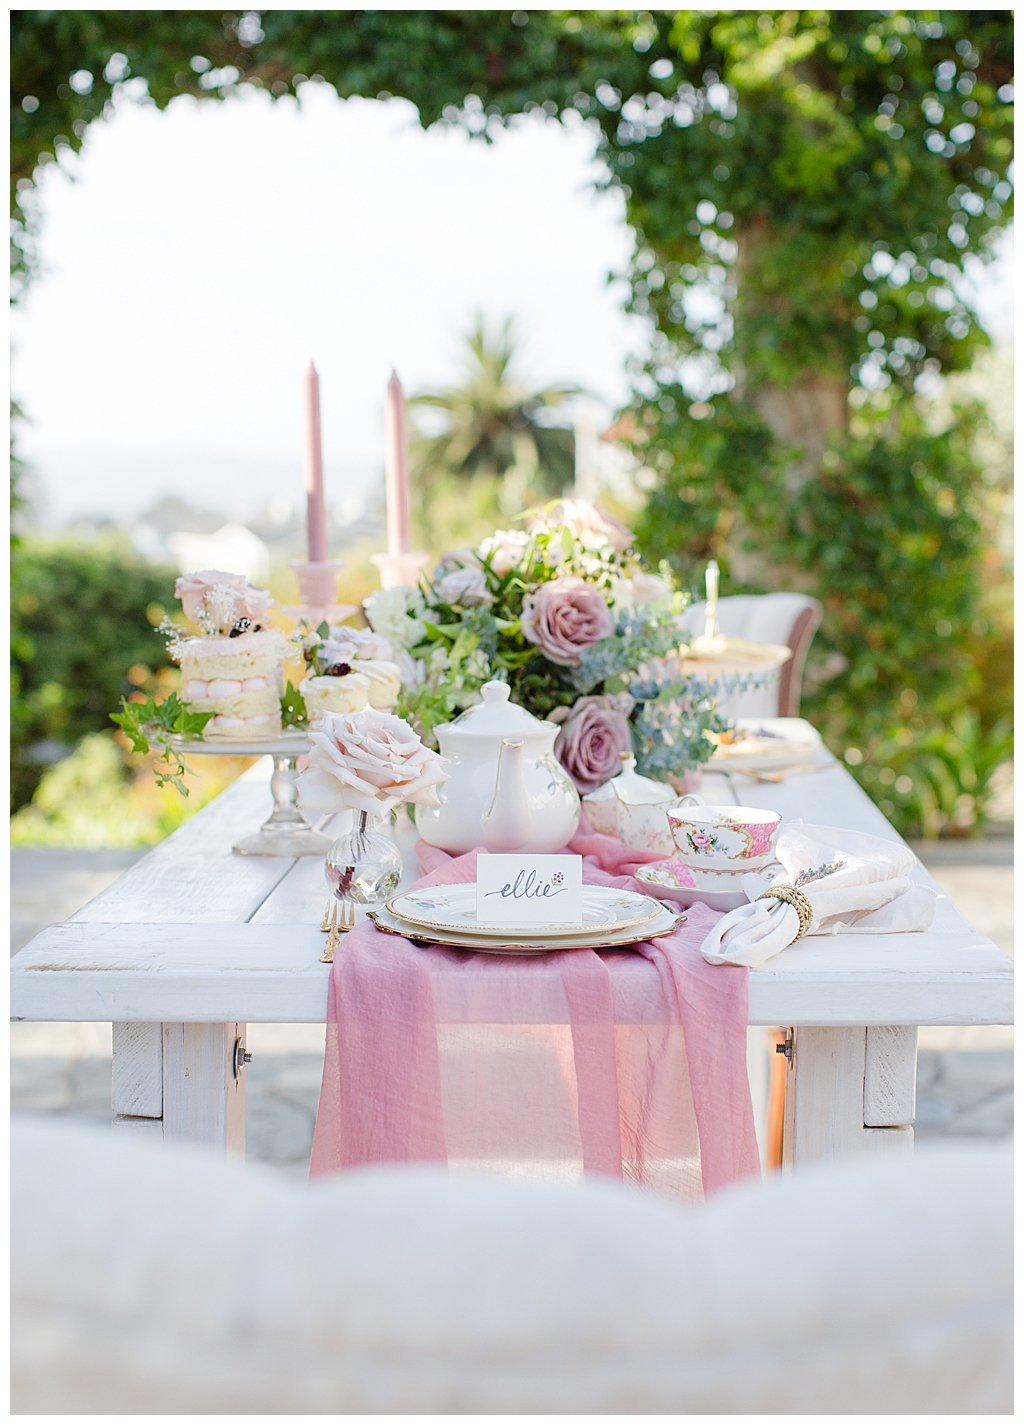 daddy-daughter-tea-party-tablescape